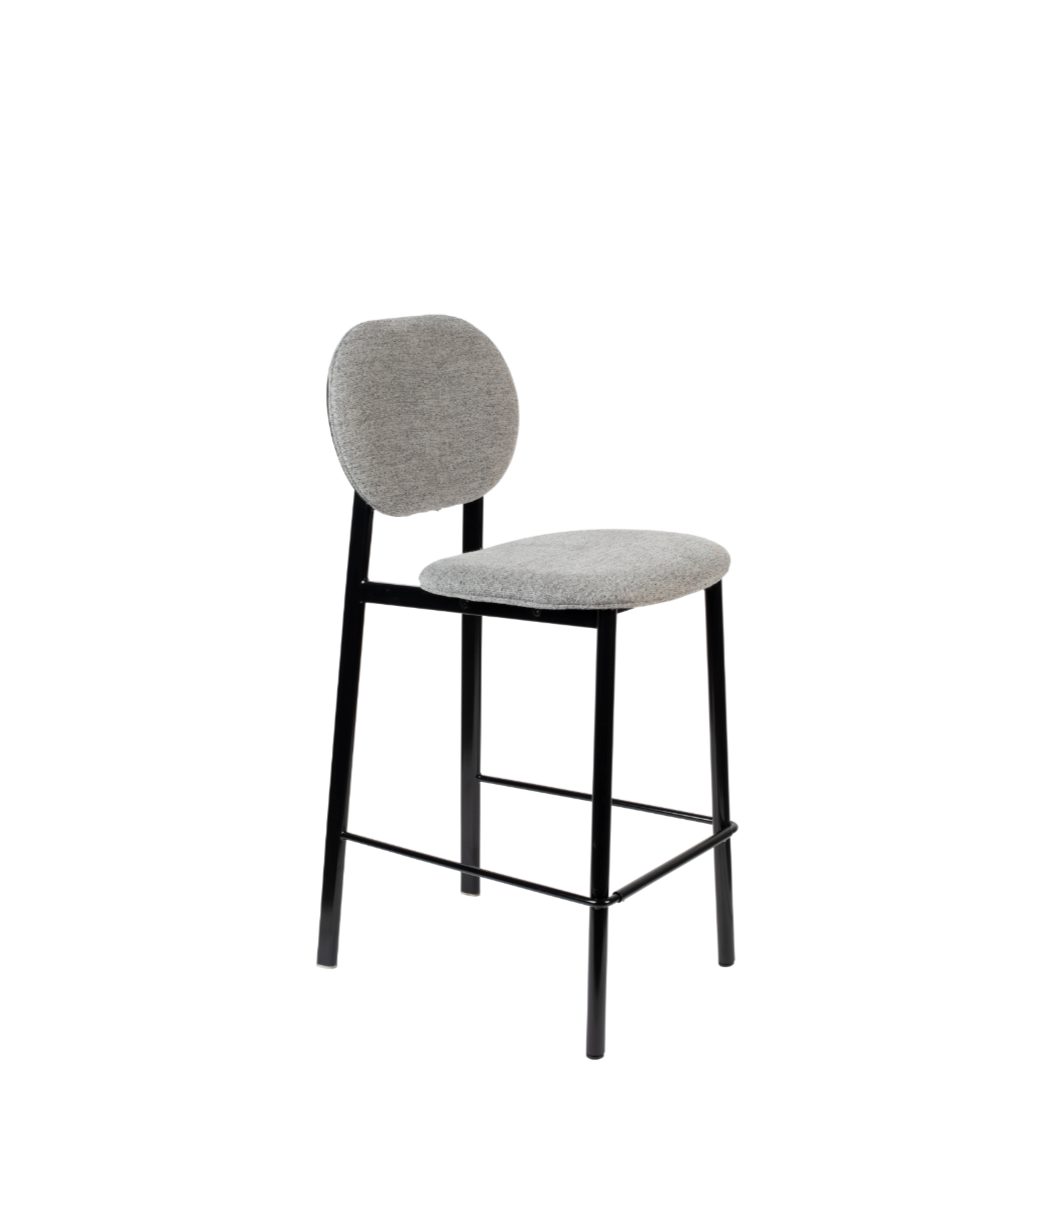 Spike Counter Stool by Zuiver